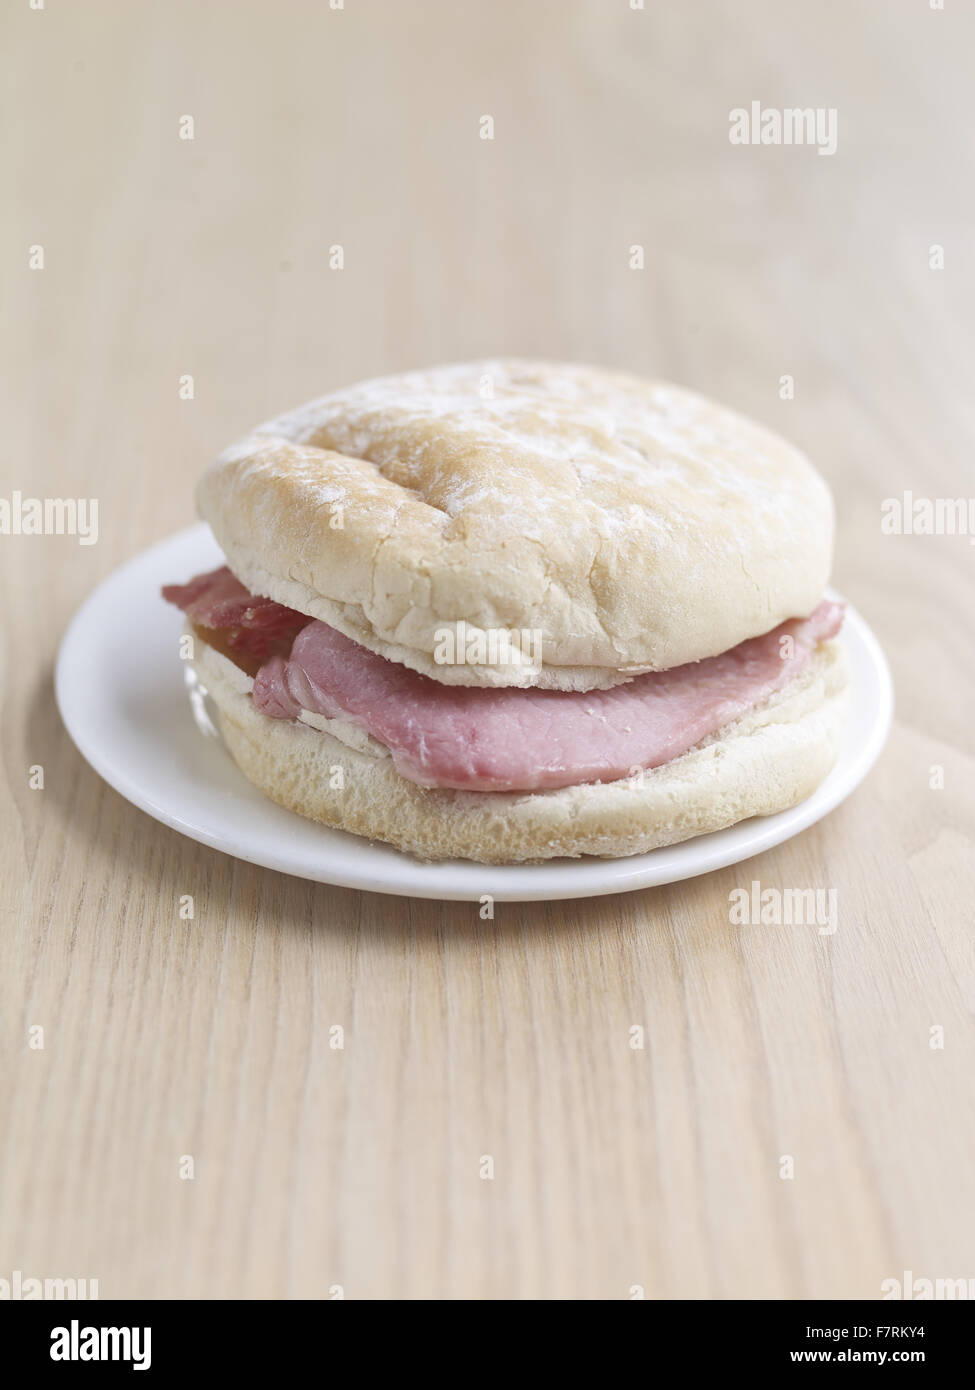 Bacon bap photographed for the 2015 National Trust Summer Cookbook. - Stock Image